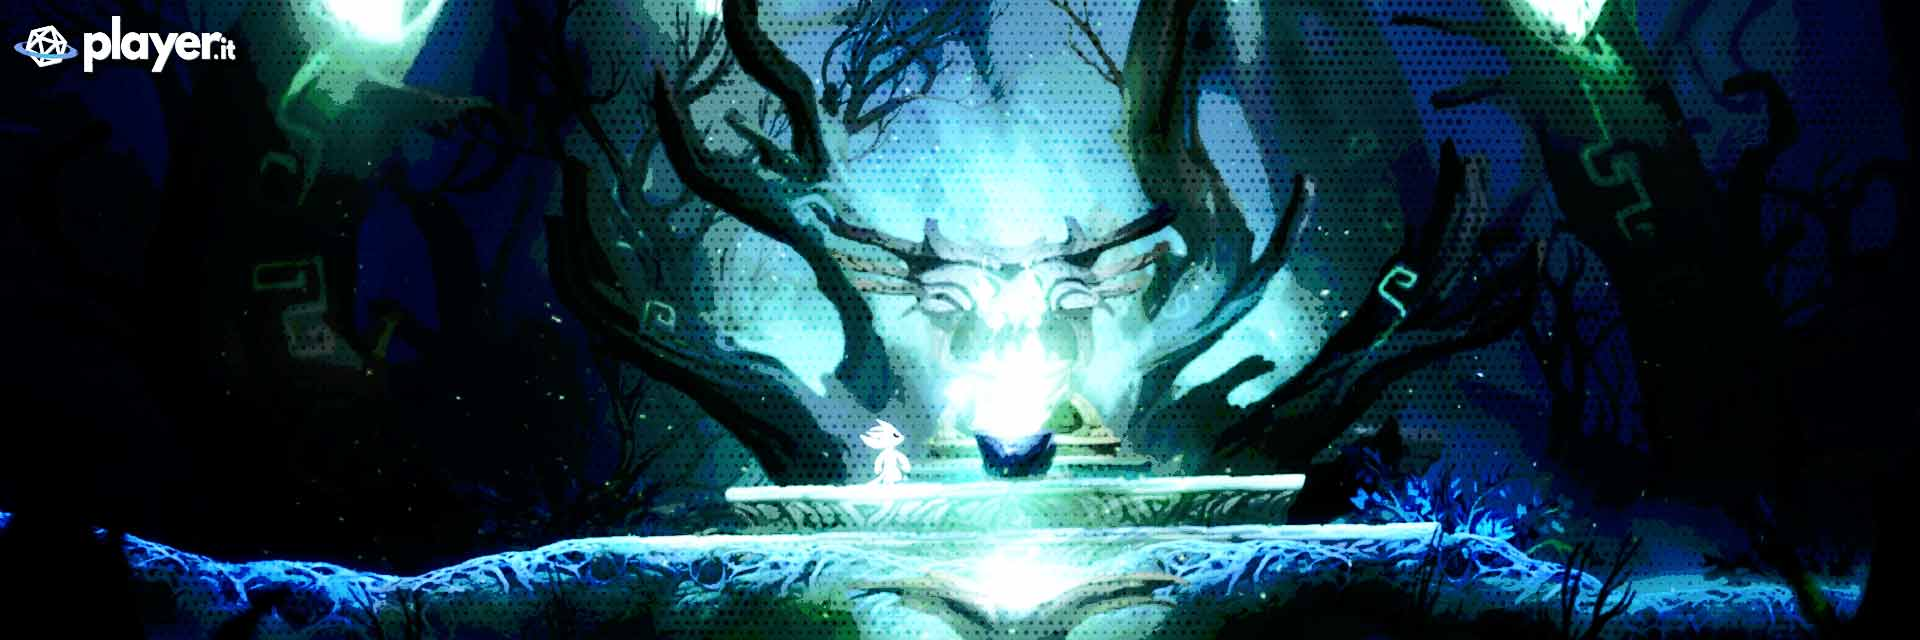 ori and the blind forest artwork wallpaper e scheda gioco